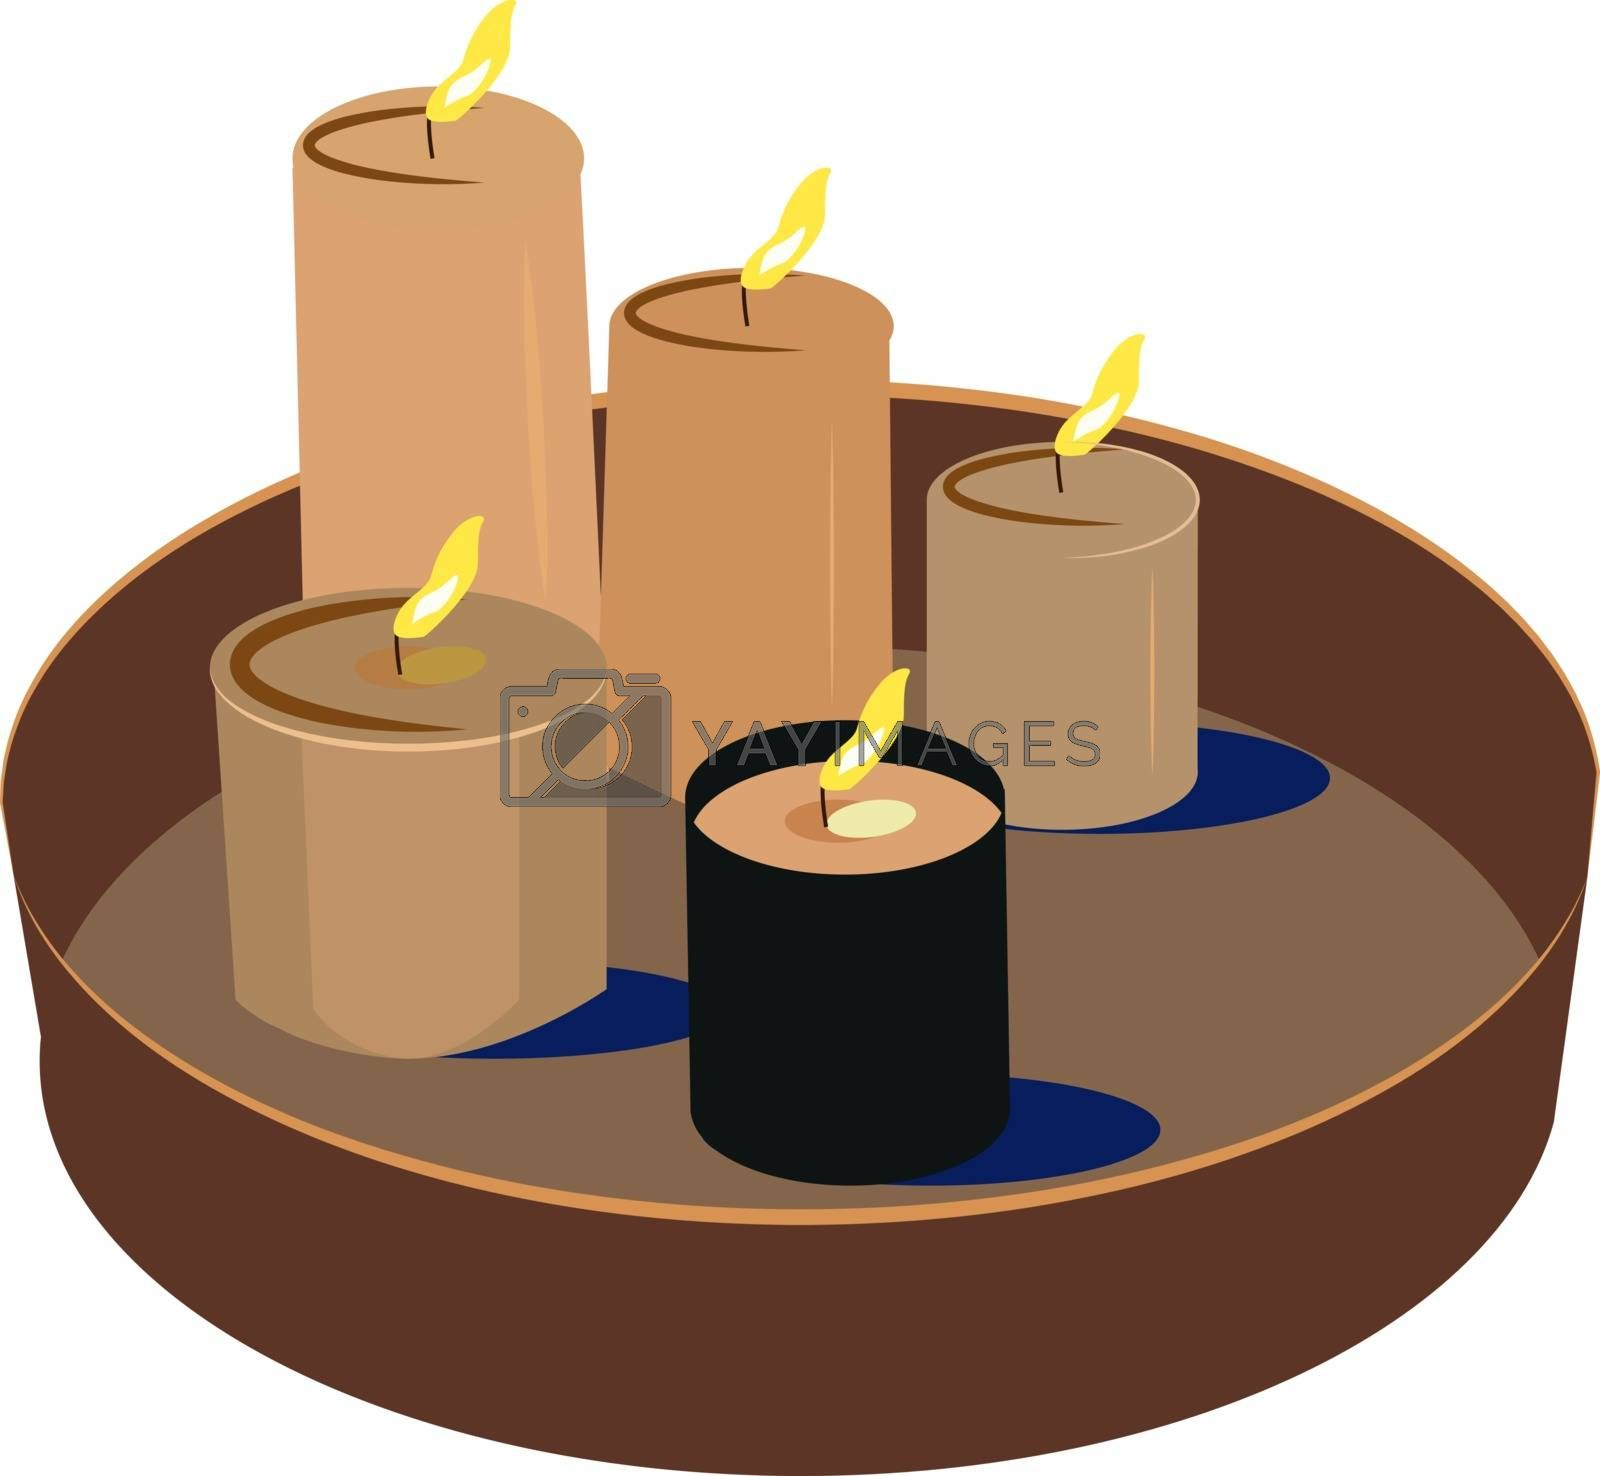 Candles, illustration, vector on white background.